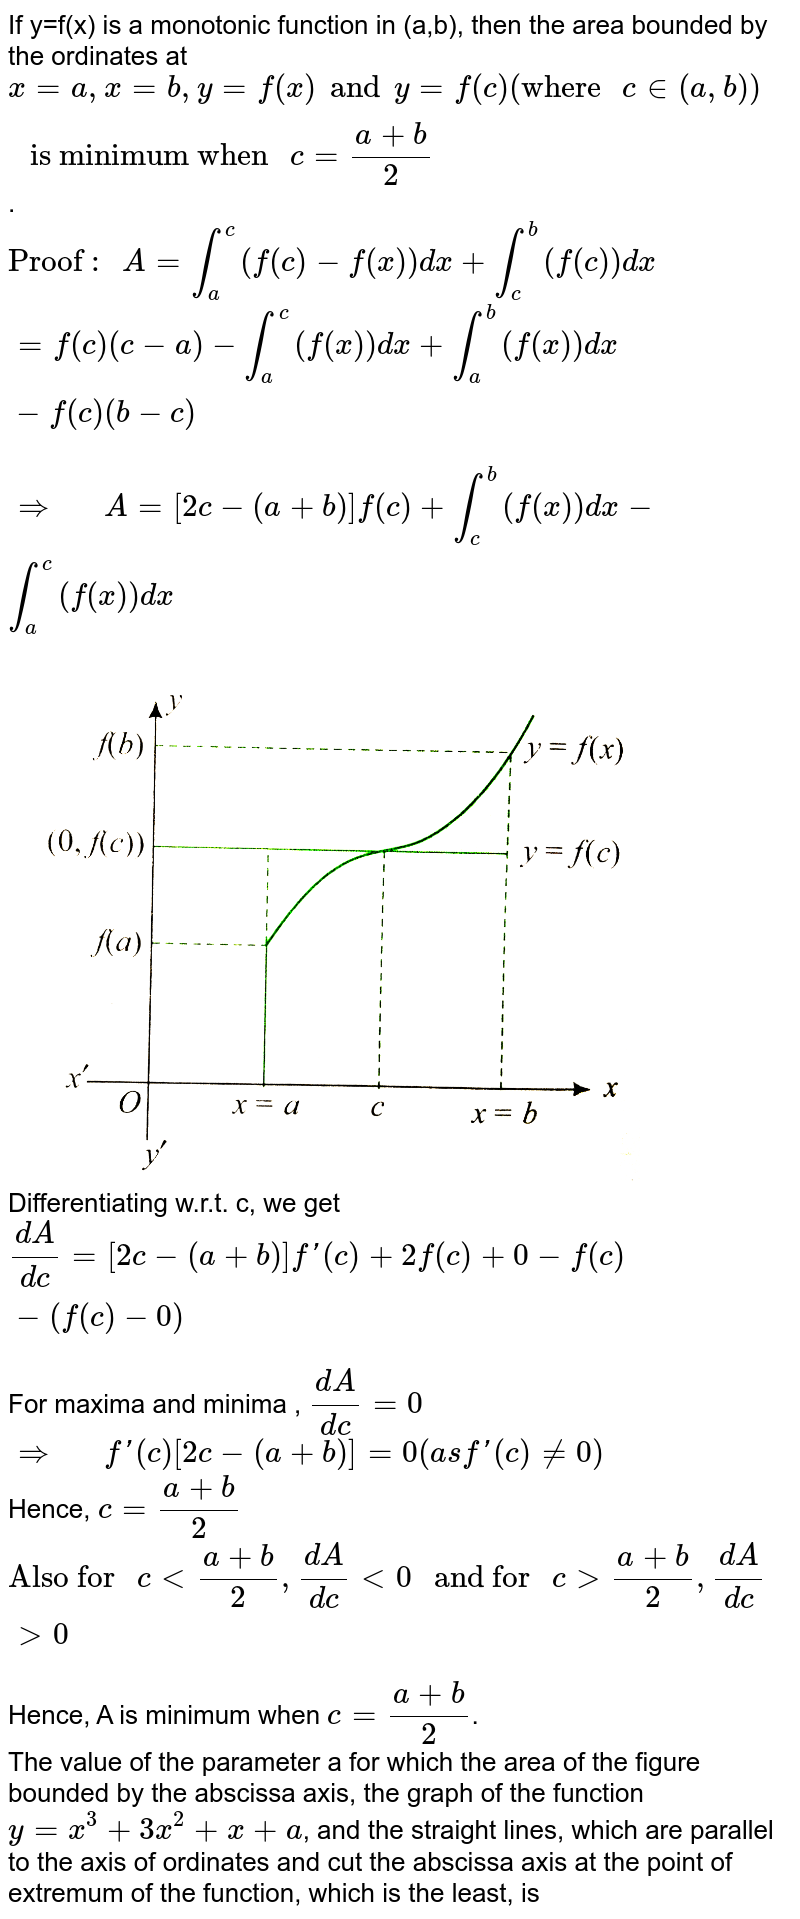 """If y=f(x) is a monotonic function in (a,b), then the area bounded by the ordinates at `x=a, x=b, y=f(x) and y=f(c)(""""where """"c in (a,b))"""" is minimum when """"c=(a+b)/(2)`. <br> `""""Proof : """" A=overset(c)underset(a)int(f(c)-f(x))dx+overset(b)underset(c)int(f(c))dx` <br> `=f(c)(c-a)-overset(c)underset(a)int(f(x))dx+overset(b)underset(a)int(f(x))dx-f(c)(b-c)` <br> `rArr""""  """"A=[2c-(a+b)]f(c)+overset(b)underset(c)int(f(x))dx-overset(c)underset(a)int(f(x))dx` <br> <img src=""""https://d10lpgp6xz60nq.cloudfront.net/physics_images/CEN_CAL_C09_E06_004_Q01.png"""" width=""""80%""""> <br> Differentiating w.r.t. c, we get <br> `(dA)/(dc)=[2c-(a+b)]f'(c)+2f(c)+0-f(c)-(f(c)-0)` <br> For maxima and minima , `(dA)/(dc)=0` <br> `rArr""""  """"f'(c)[2c-(a+b)]=0(as f'(c)ne 0)` <br> Hence, `c=(a+b)/(2)` <br> `""""Also for """"clt(a+b)/(2),(dA)/(dc)lt0"""" and for """"cgt(a+b)/(2),(dA)/(dc)gt0` <br> Hence, A is minimum when `c=(a+b)/(2)`. <br> The value of the parameter a for which the area of the figure bounded by the abscissa axis, the graph of the function `y=x^(3)+3x^(2)+x+a`, and the straight lines, which are parallel to the axis of ordinates and cut the abscissa axis at the point of extremum of the function, which is the least, is"""